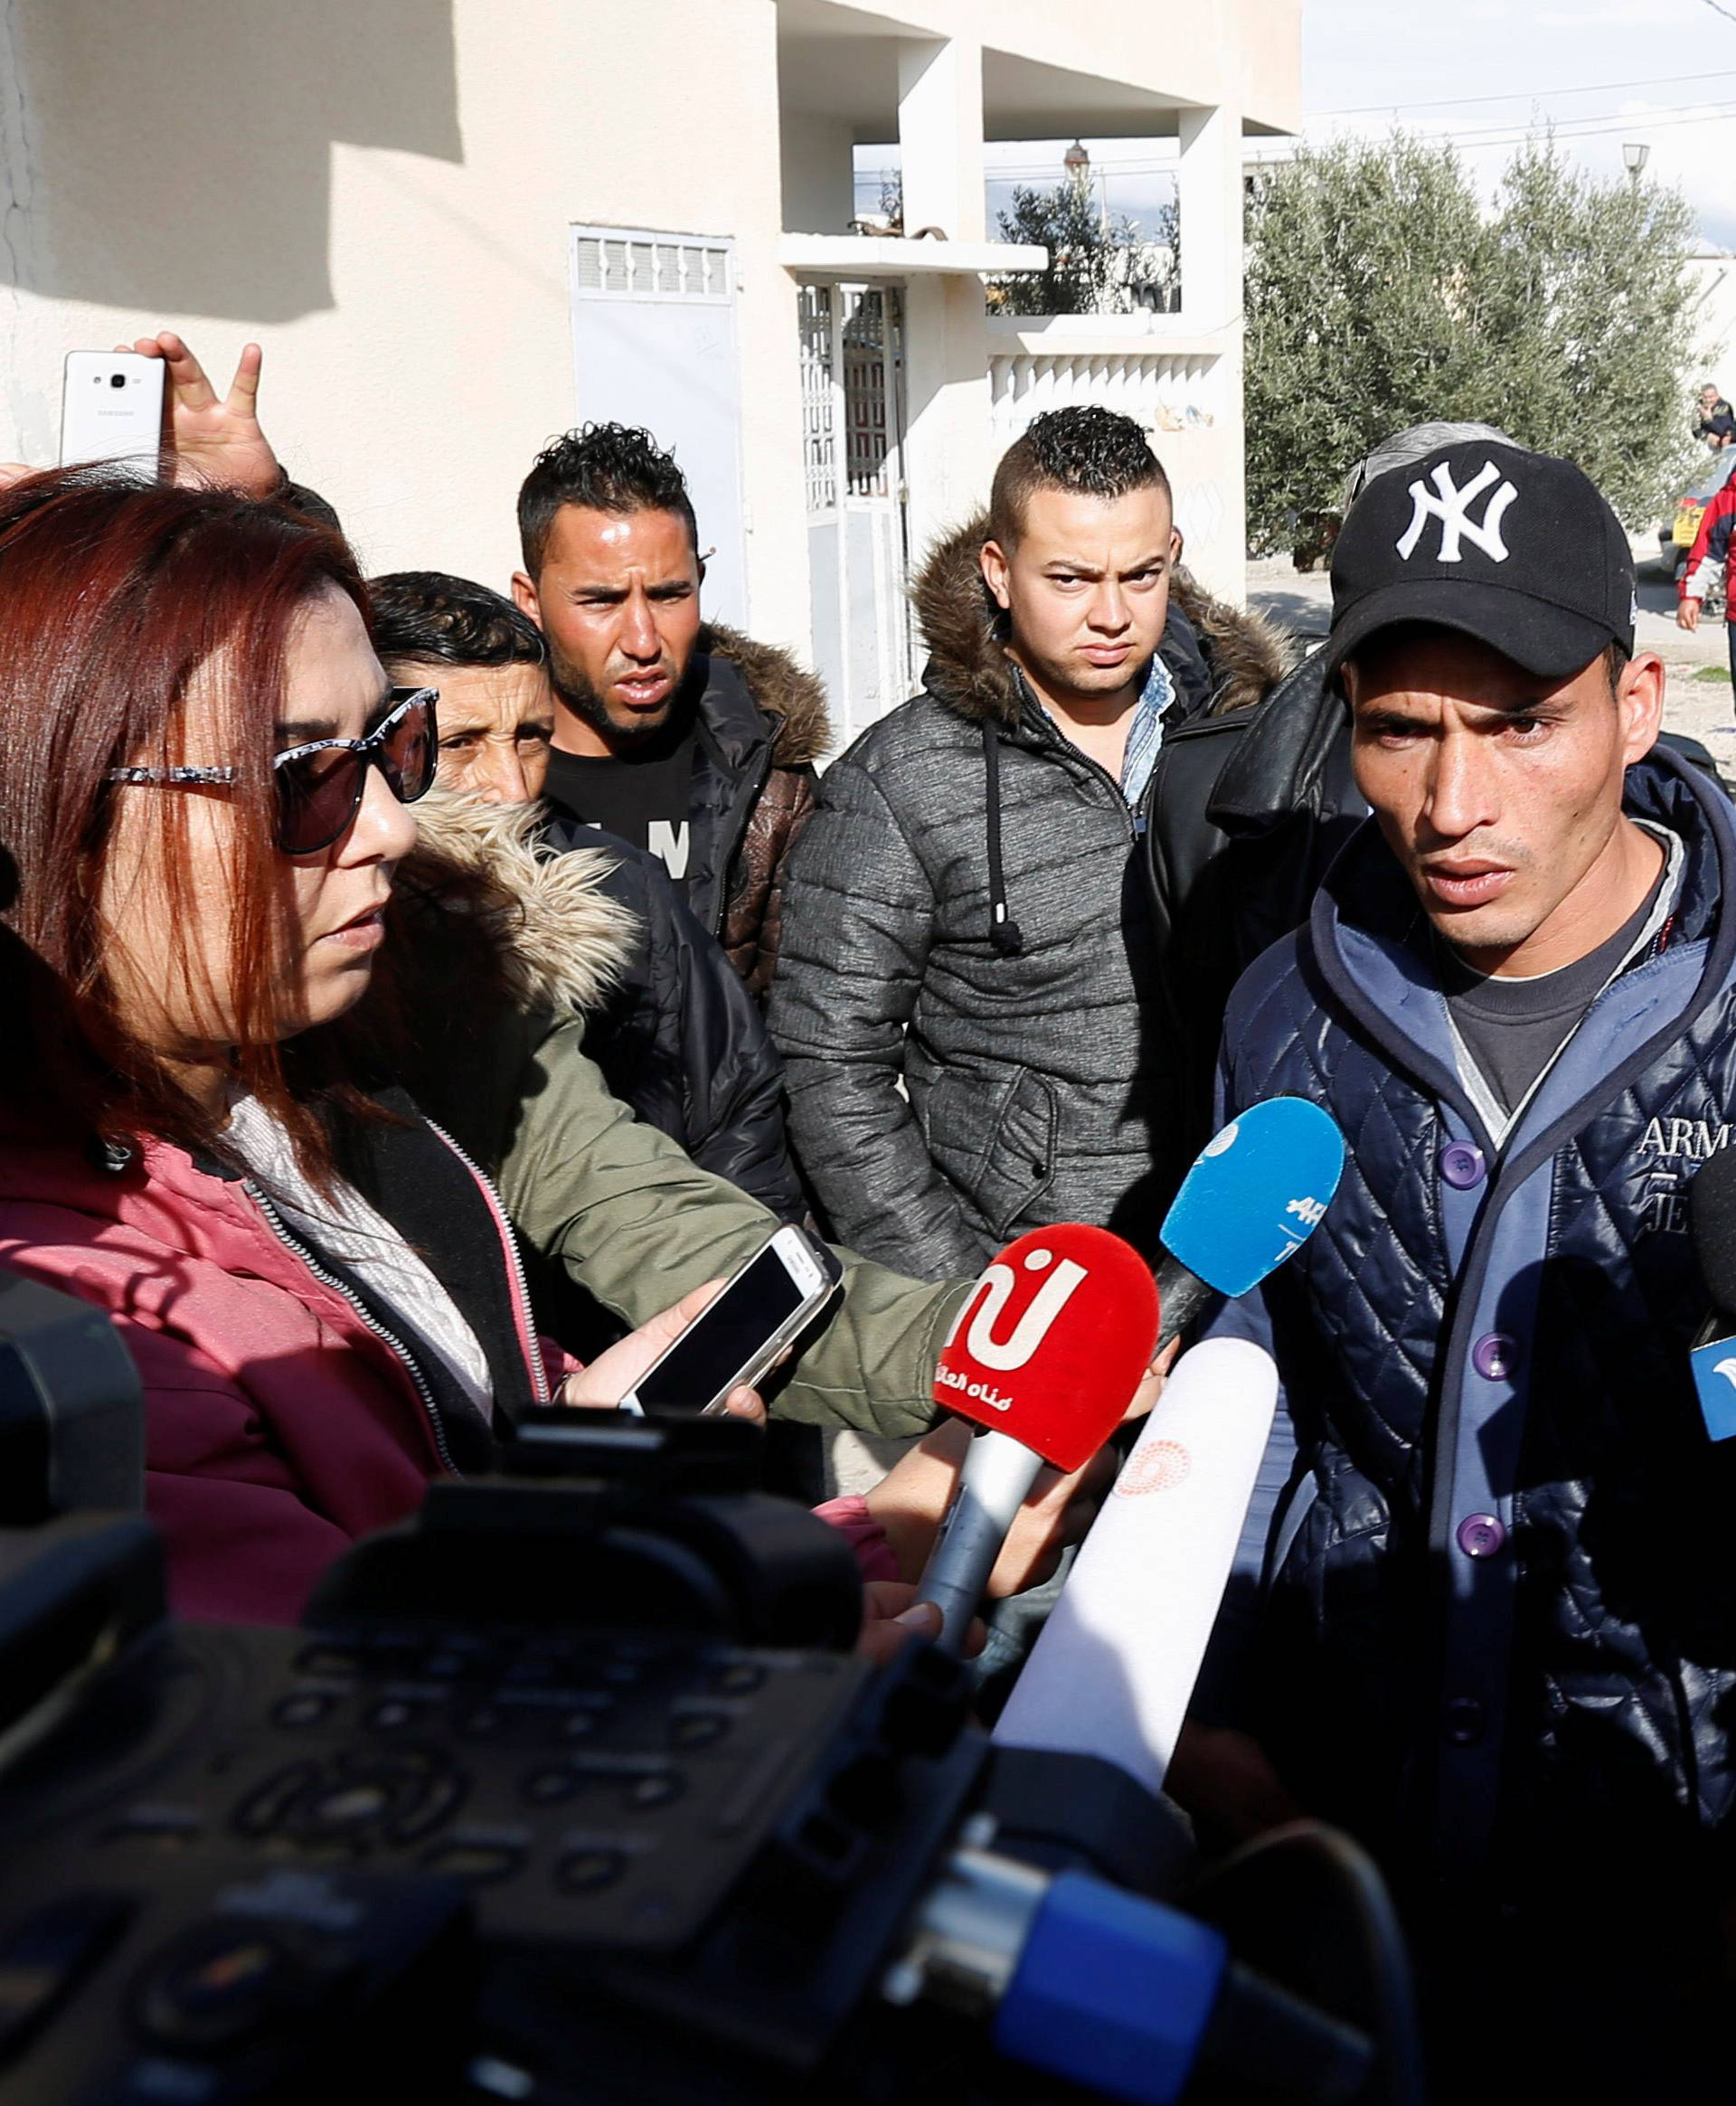 Walid, brother of suspect Anis Amri who is sought in relation with the truck attack on a Christmas market in Berlin, speaks to members of the media near their home in Oueslatia, Tunisia